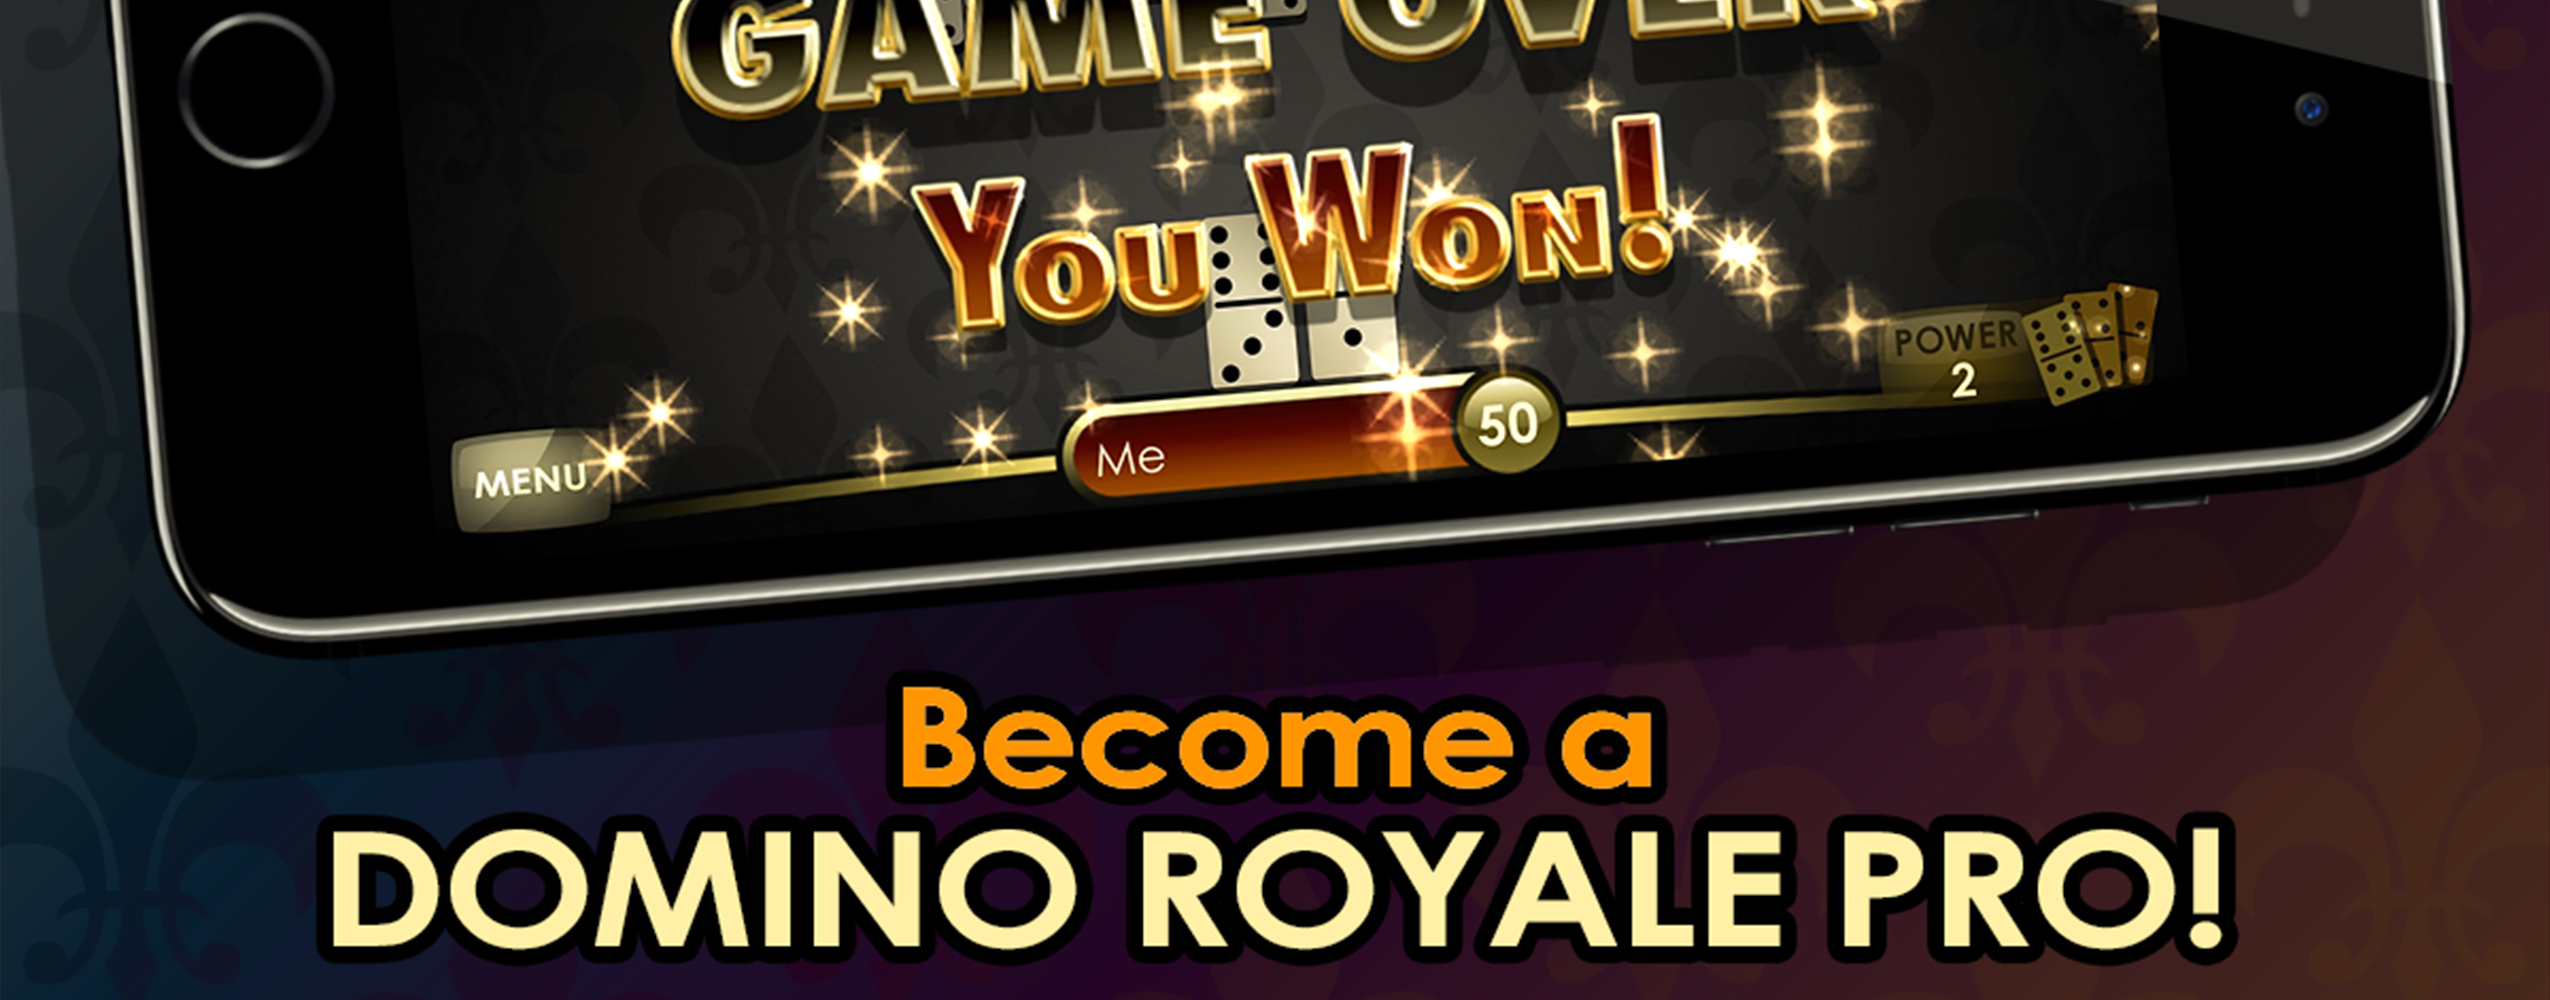 Become a Domino Royale Pro!